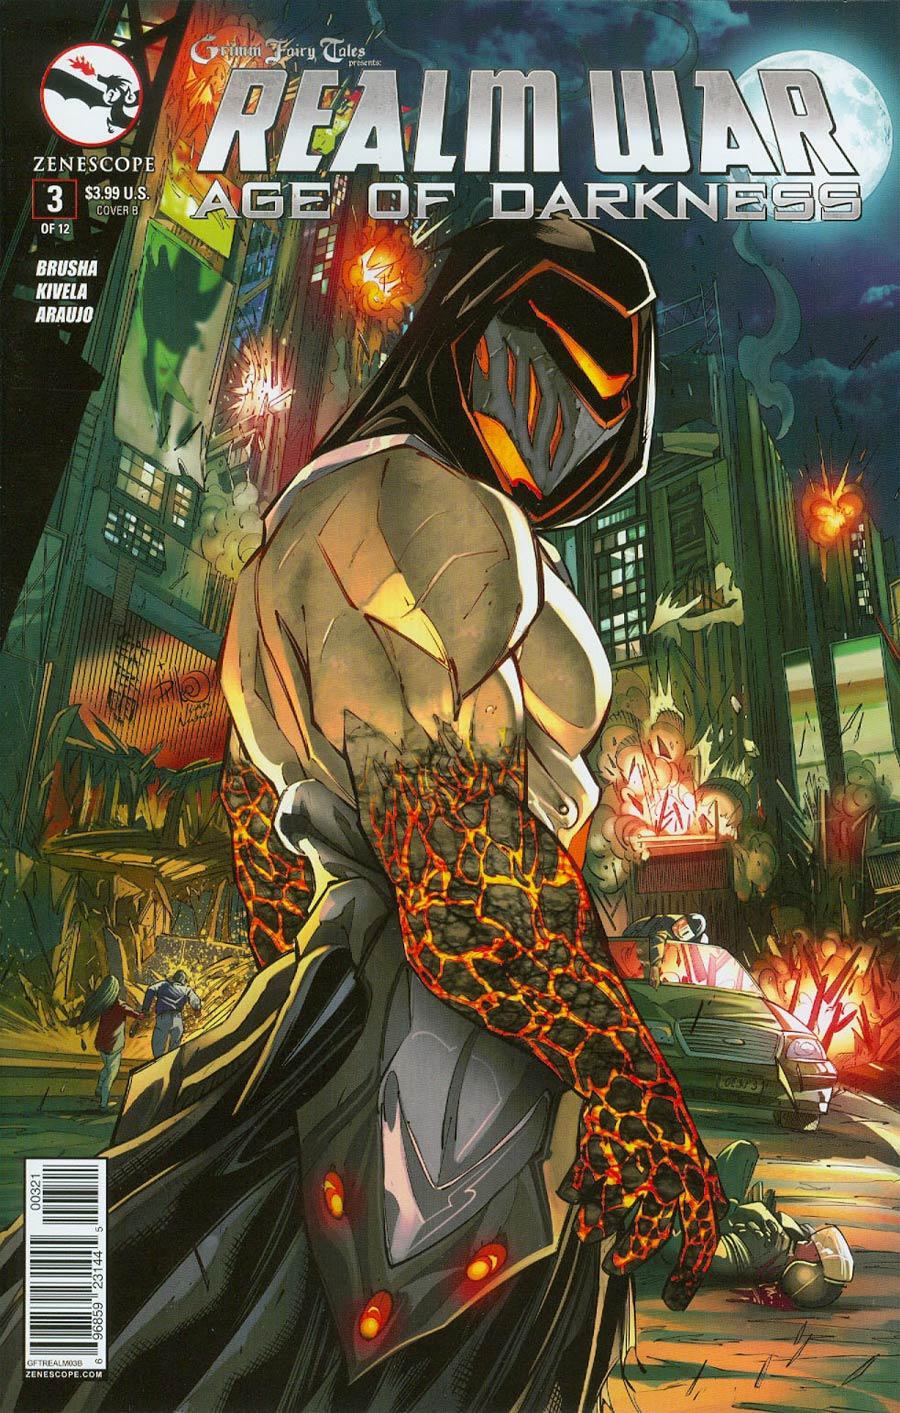 Grimm Fairy Tales Presents Realm War #3 Cover B Giuseppe Cafaro (Age Of Darkness Tie-In)